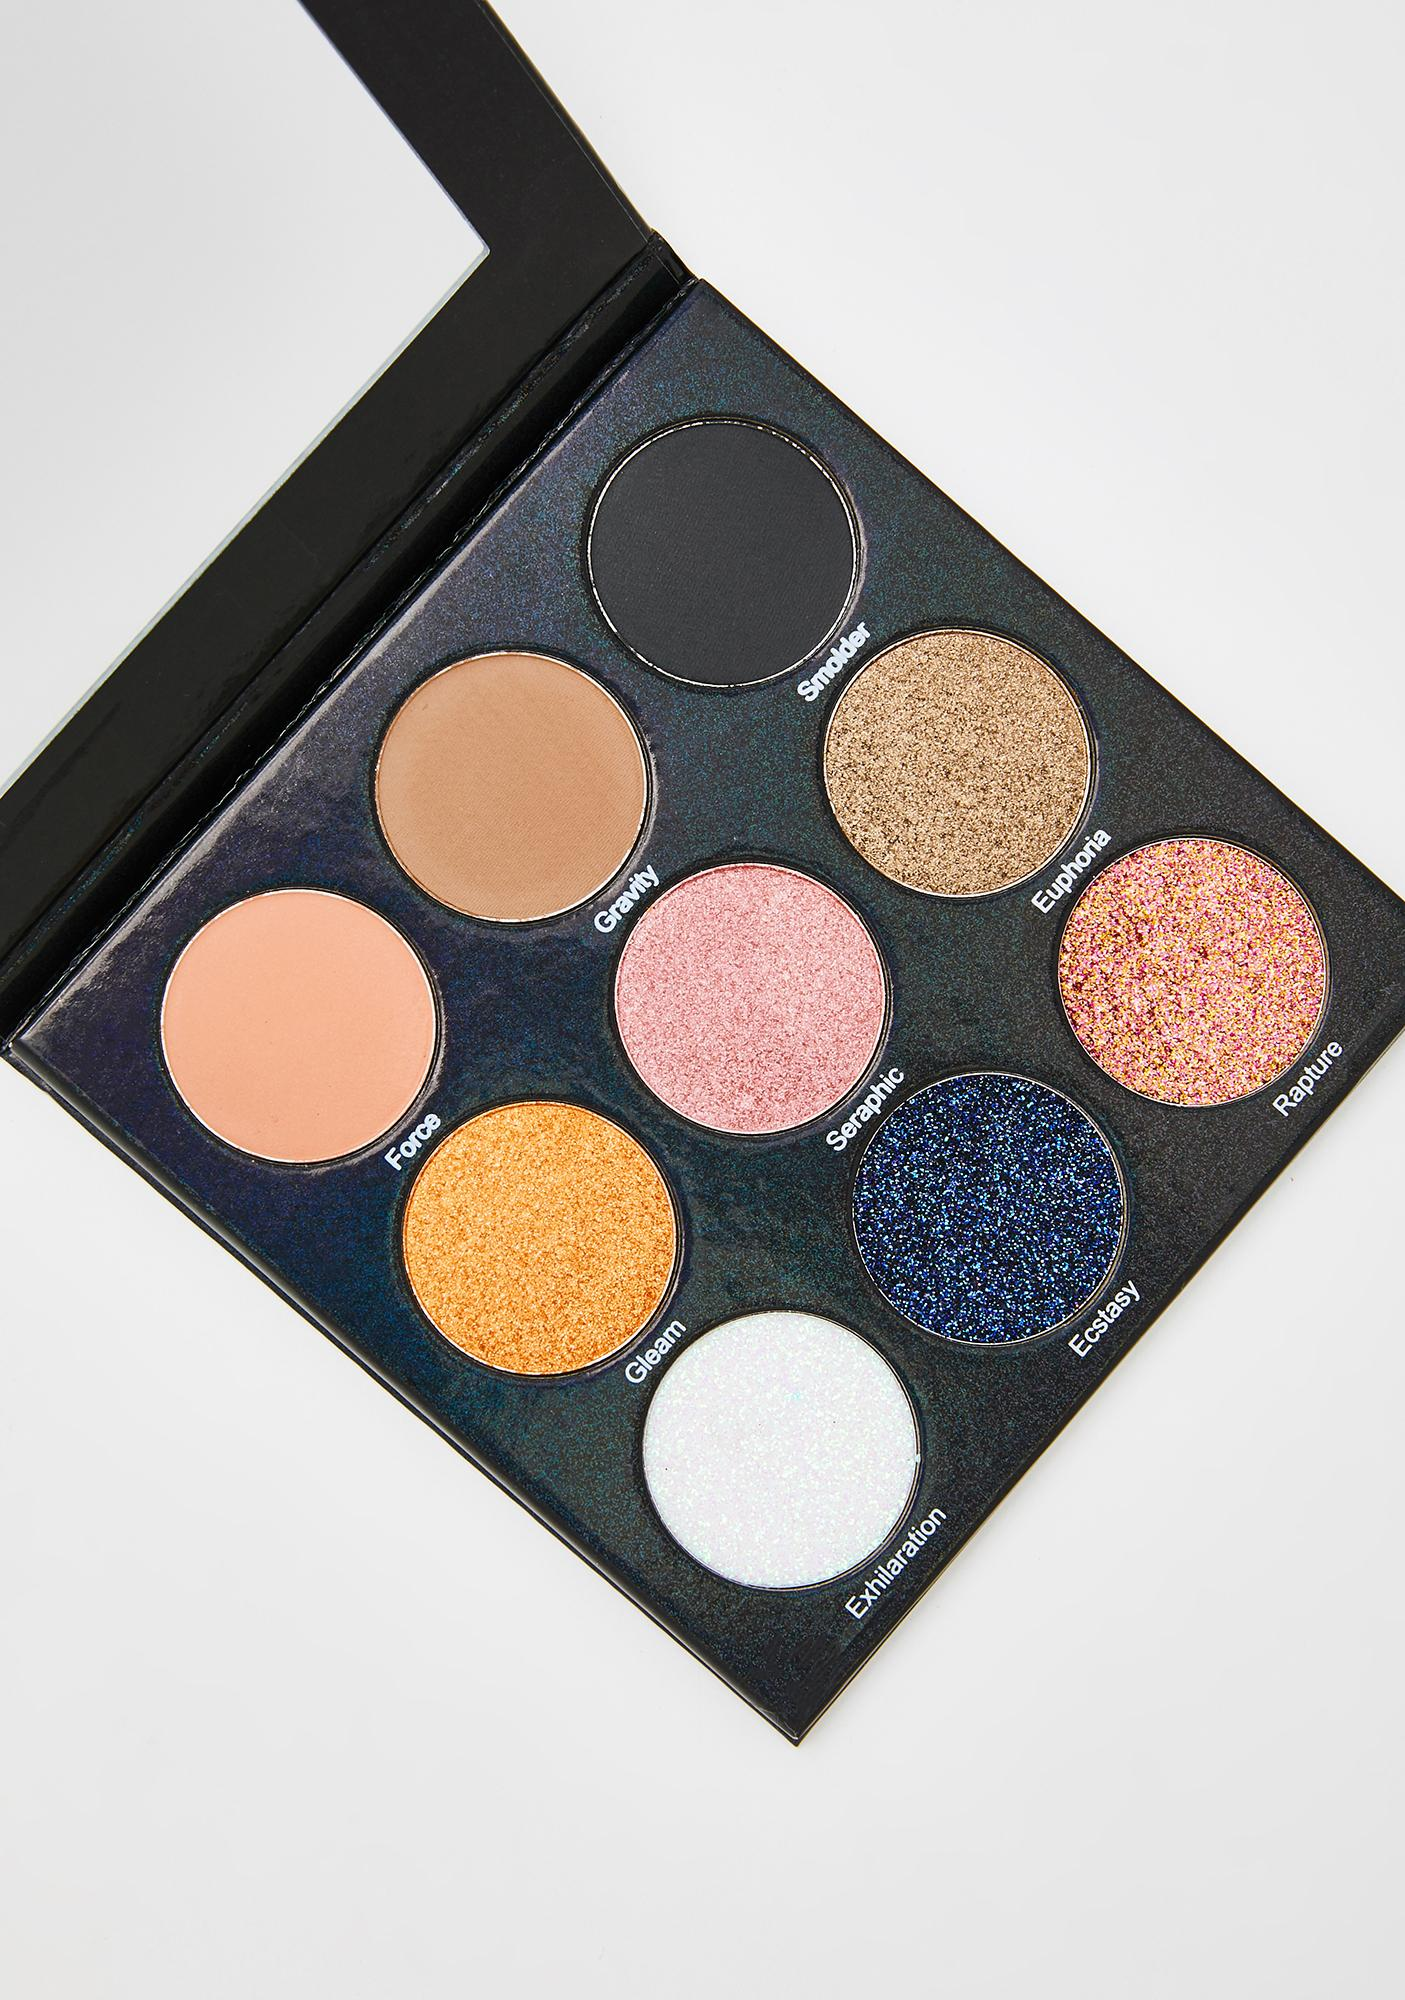 Alien Cosmetics Phases Eyeshadow Palette